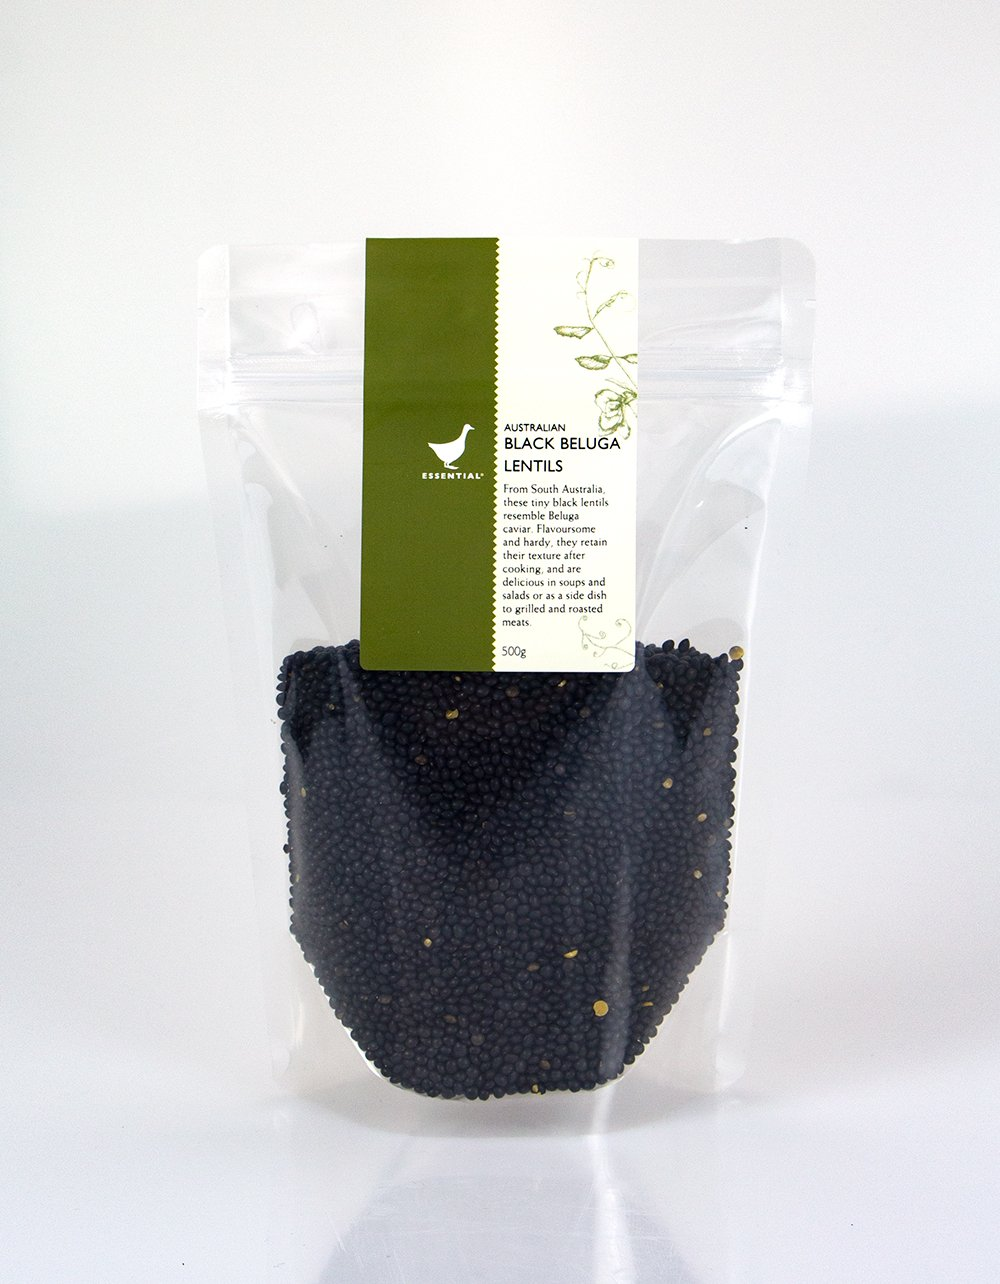 The Essential Ingredient Black Beluga Lentils 500g